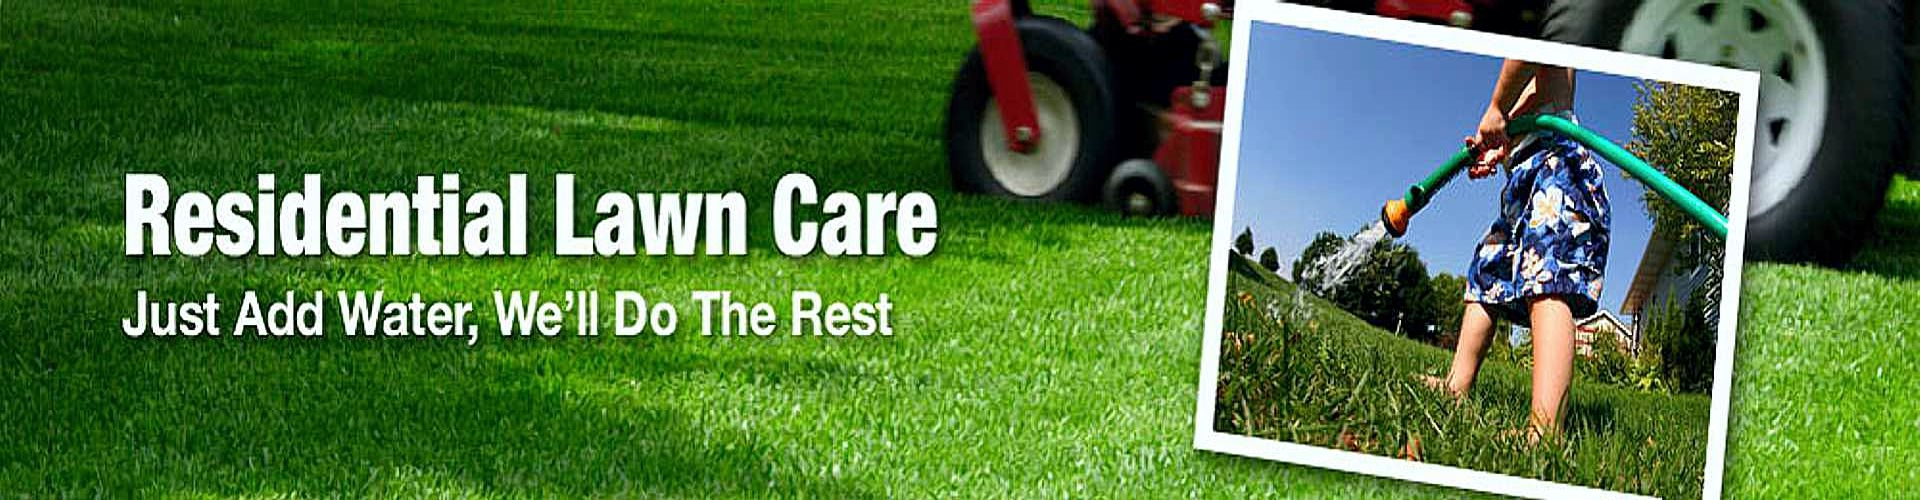 1-Best-Lawn-Care